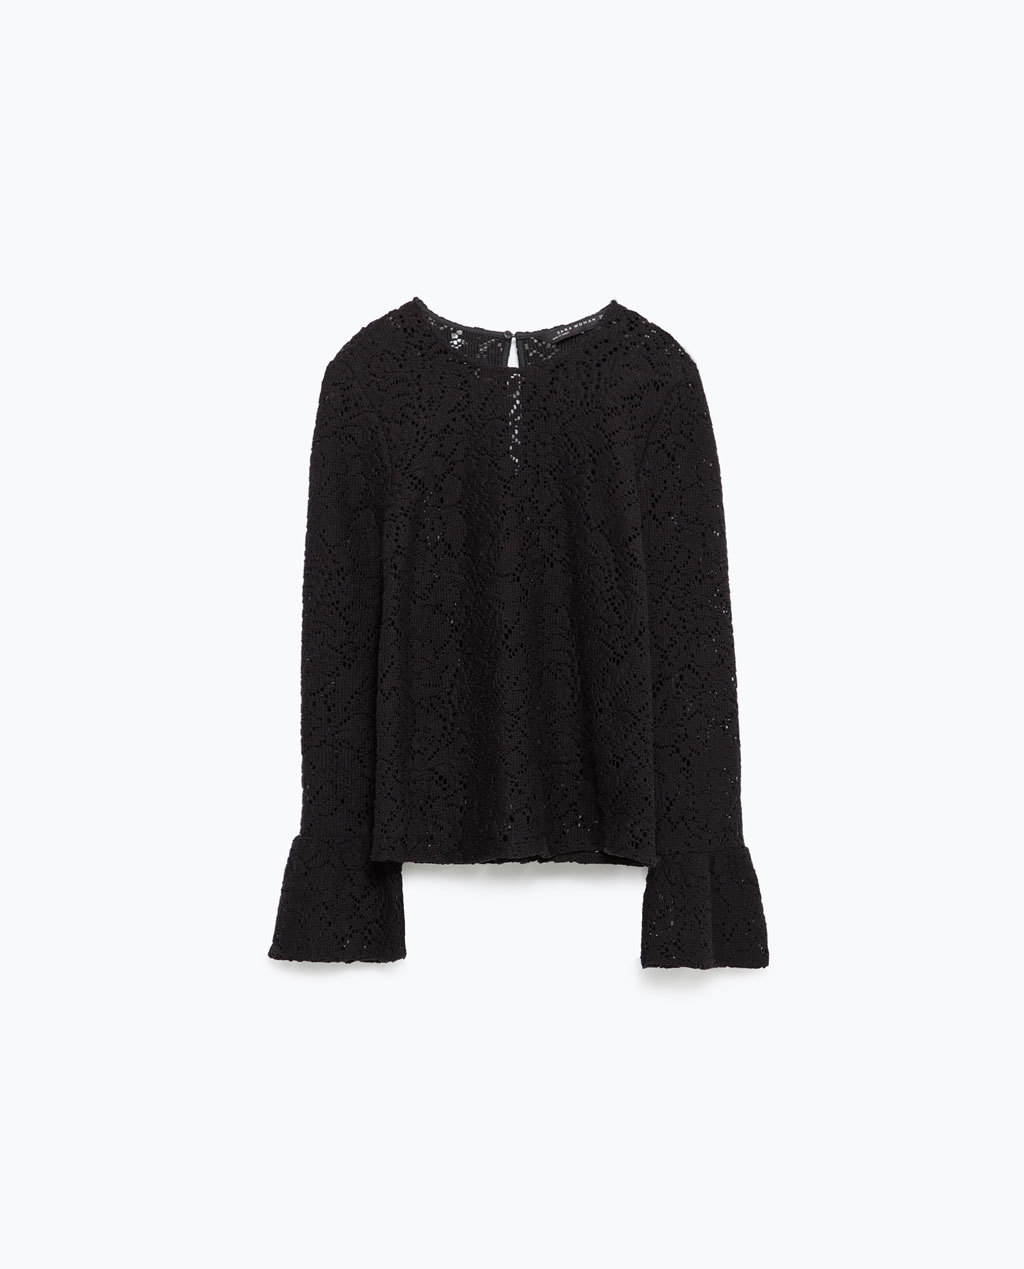 Lace Top - neckline: round neck; sleeve style: trumpet; predominant colour: black; occasions: evening, creative work; length: standard; style: top; fibres: cotton - mix; fit: body skimming; sleeve length: long sleeve; texture group: lace; pattern type: fabric; pattern size: standard; pattern: patterned/print; season: a/w 2015; trends: romantic goth; wardrobe: highlight